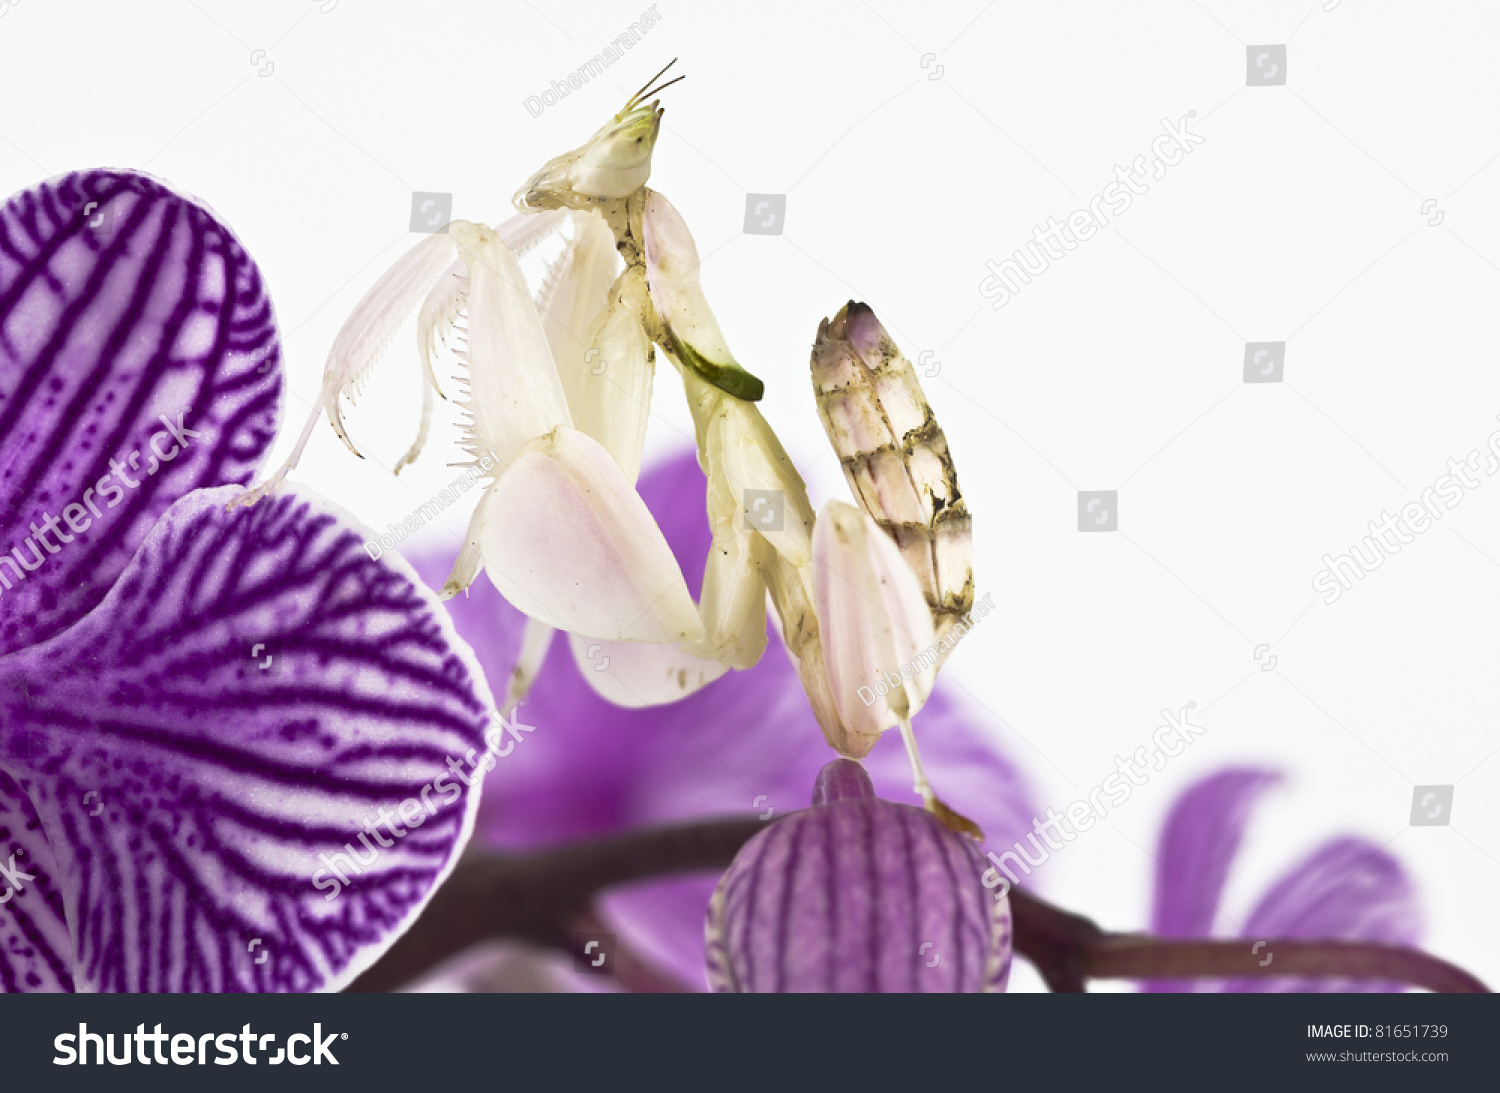 Hymenopus coronatus malaysian orchid mantis malaysian stock photo hymenopus coronatus malaysian orchid mantis malaysian orchid praying mantis pink orchid mantis dhlflorist Image collections